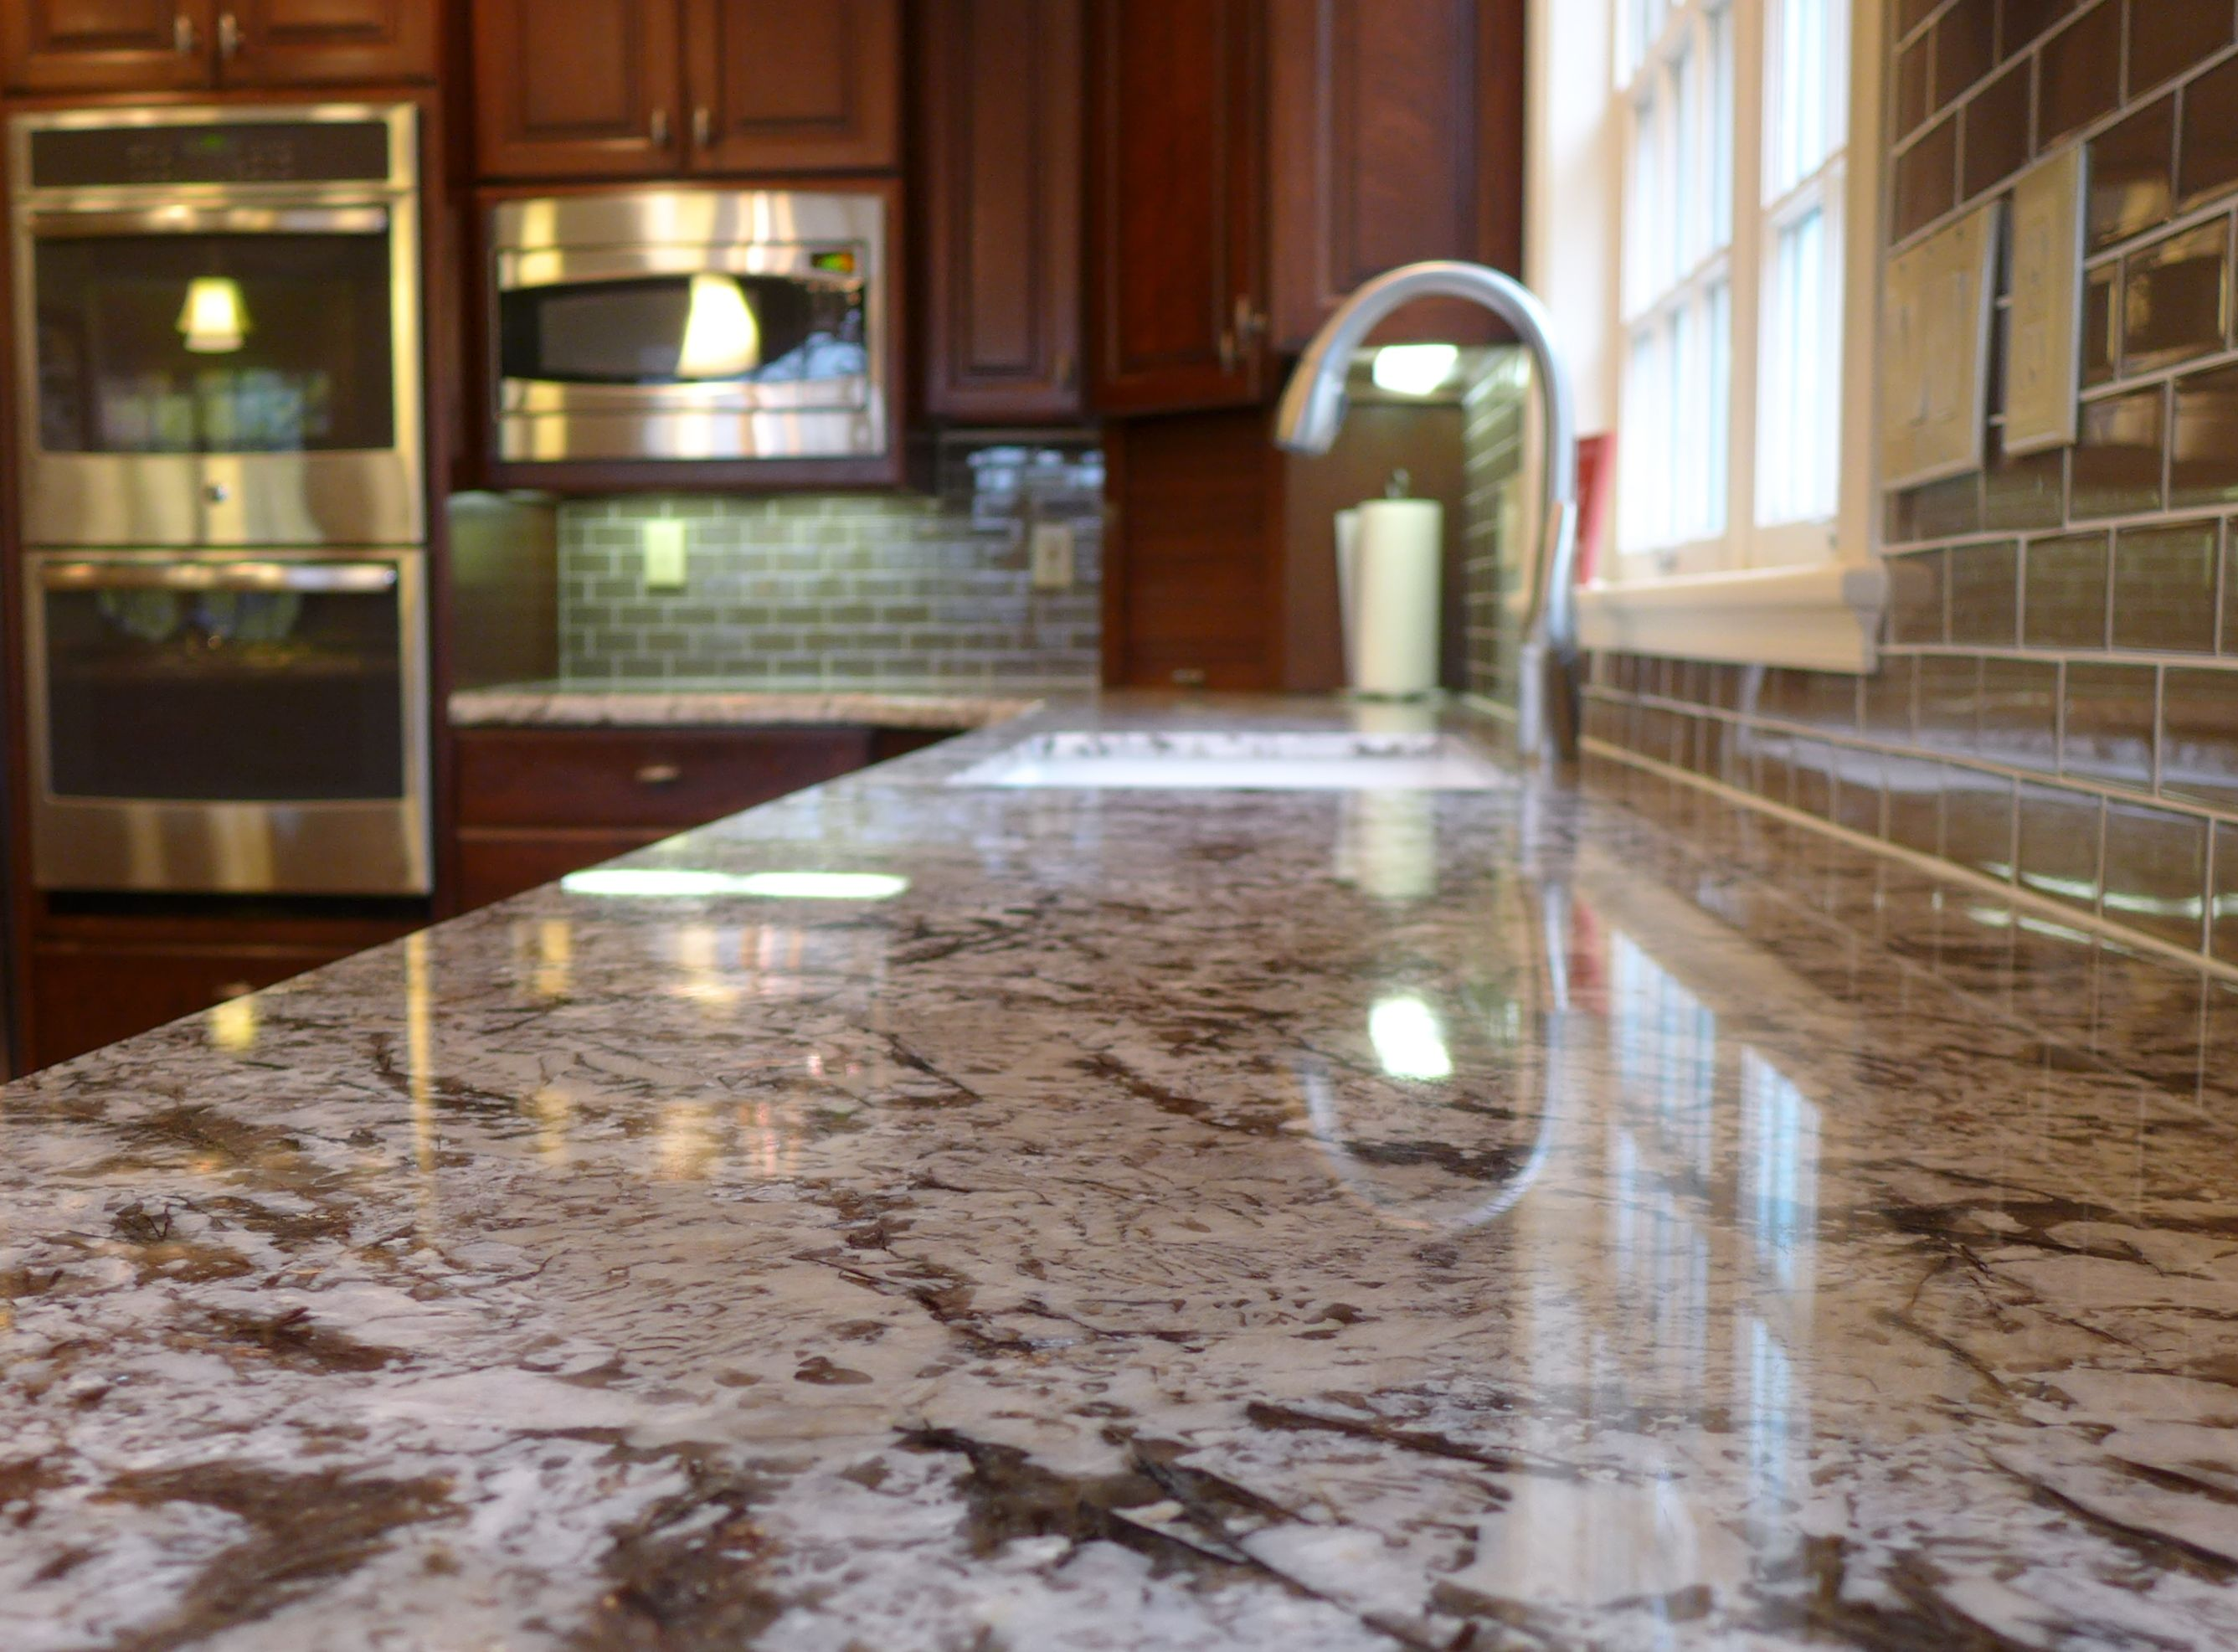 Bianco Antico Granite Countertops Fabricated And Installed By Accent  Interiors In SLC, UT.